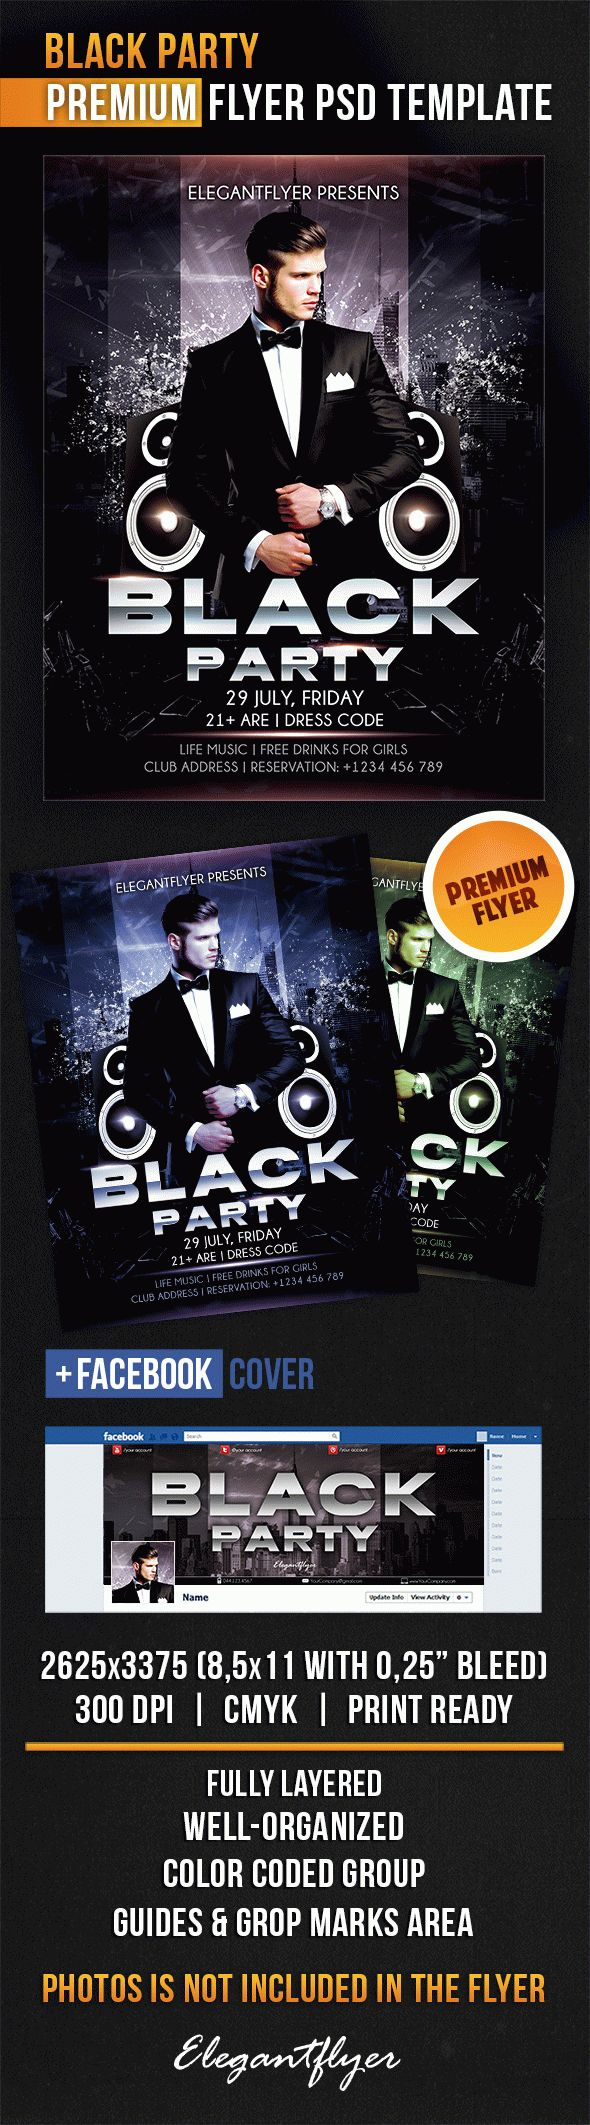 black party dresses psd flyer  u2013 by elegantflyer